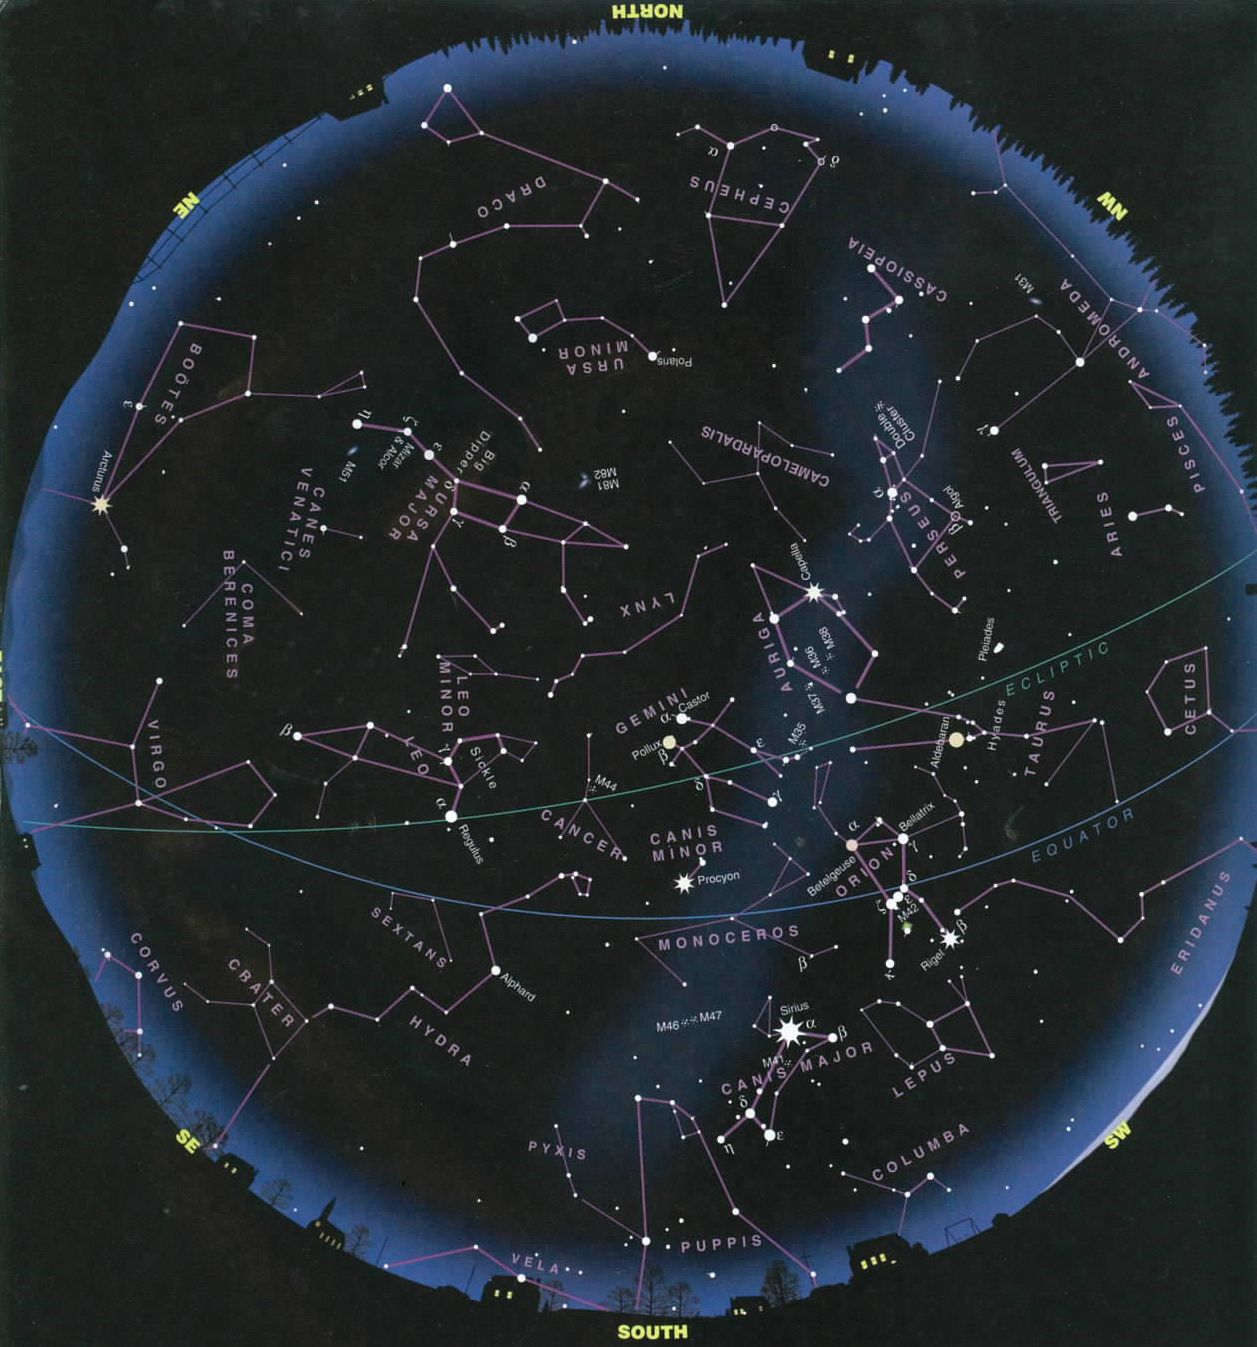 Night Sky Constellations Northern Hemisphere Star Gazing What To - Night sky map northern hemisphere